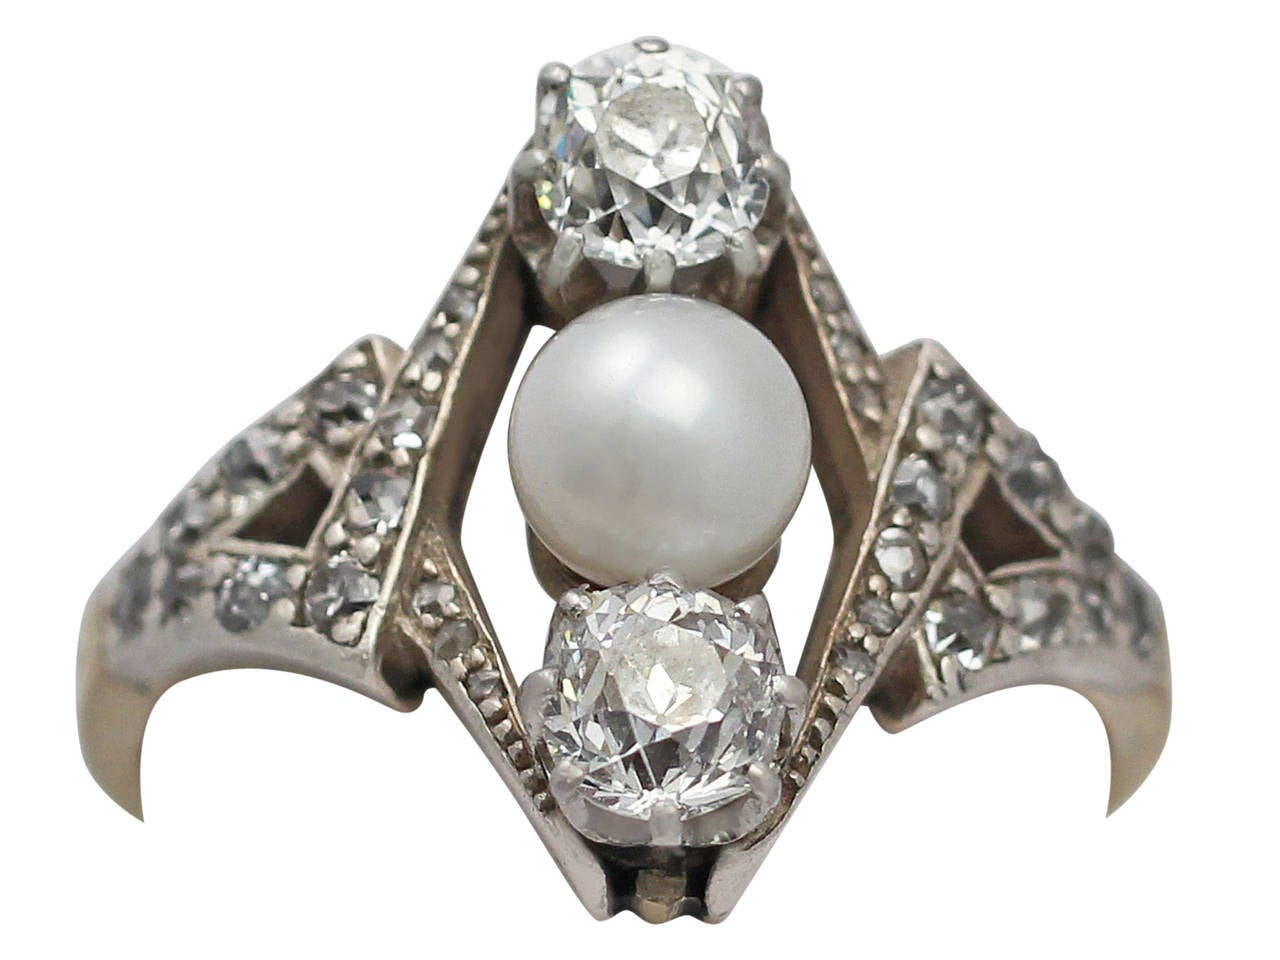 A fine and impressive antique 1.15 carat diamond and cultured pearl, 18k yellow gold, platinum set dress ring; part of our antique jewelry and estate jewelry collections.  This impressive antique diamond and pearl ring has been crafted in 18k yellow